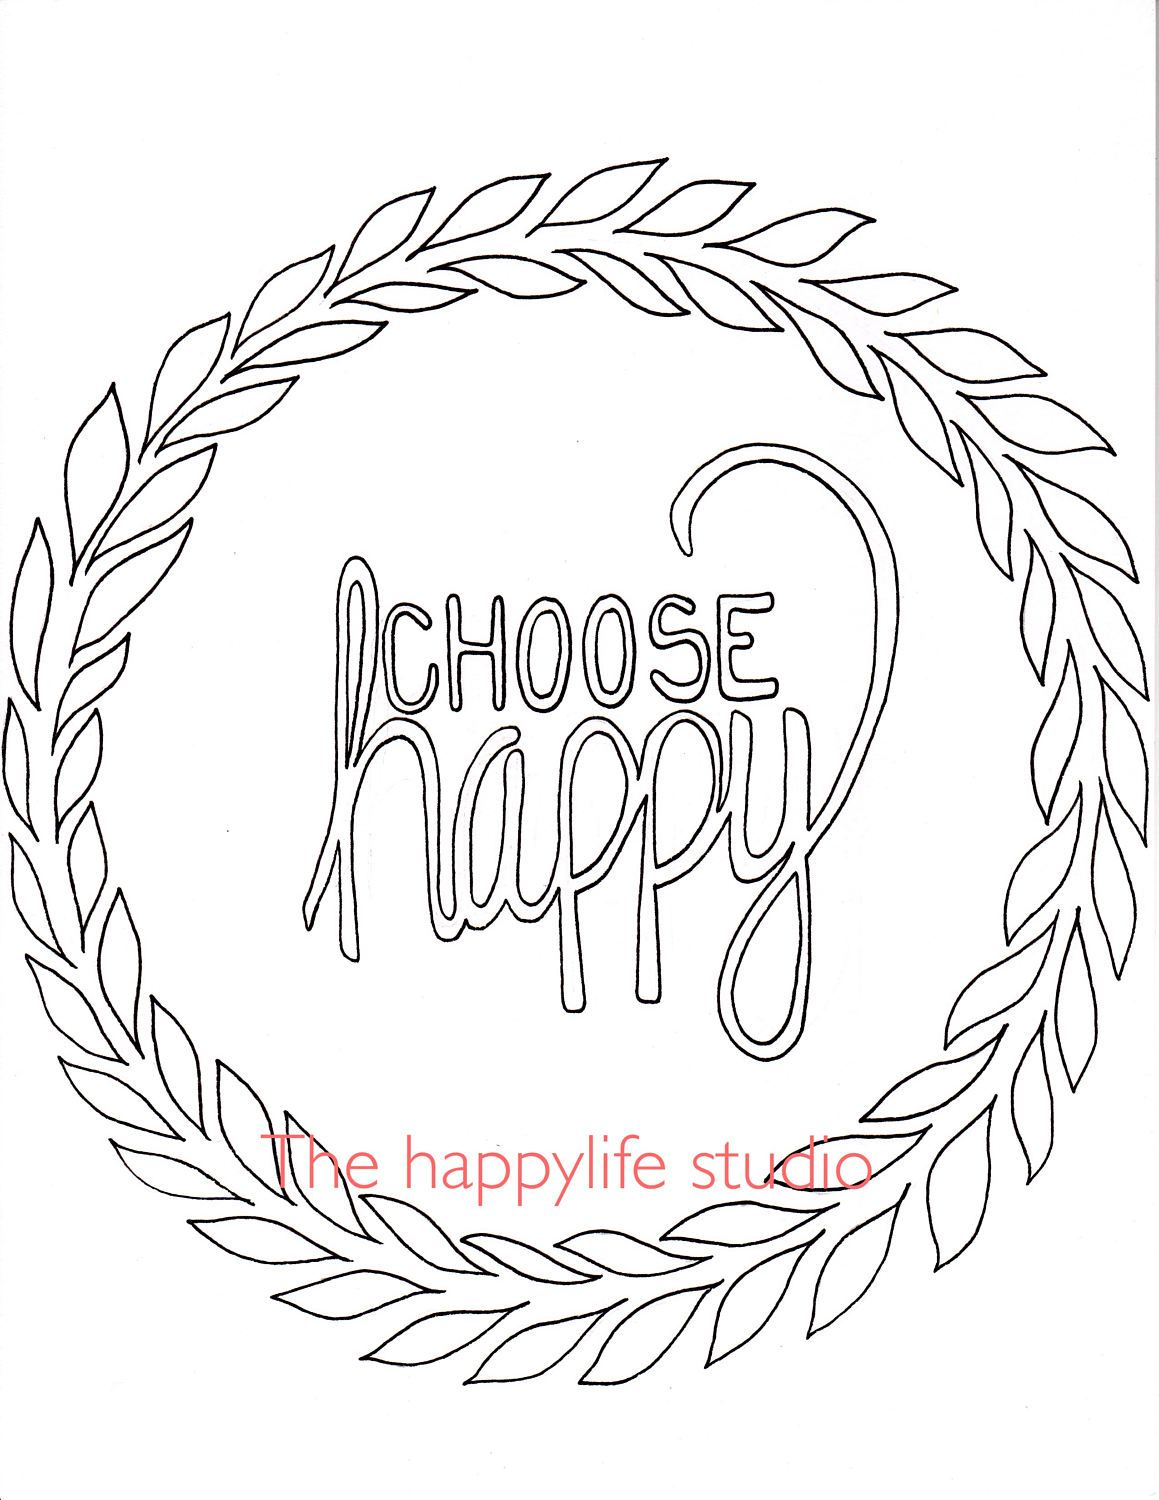 choose happy coloring page, simple adult coloring page, coloring ... - Simple Therapeutic Coloring Pages